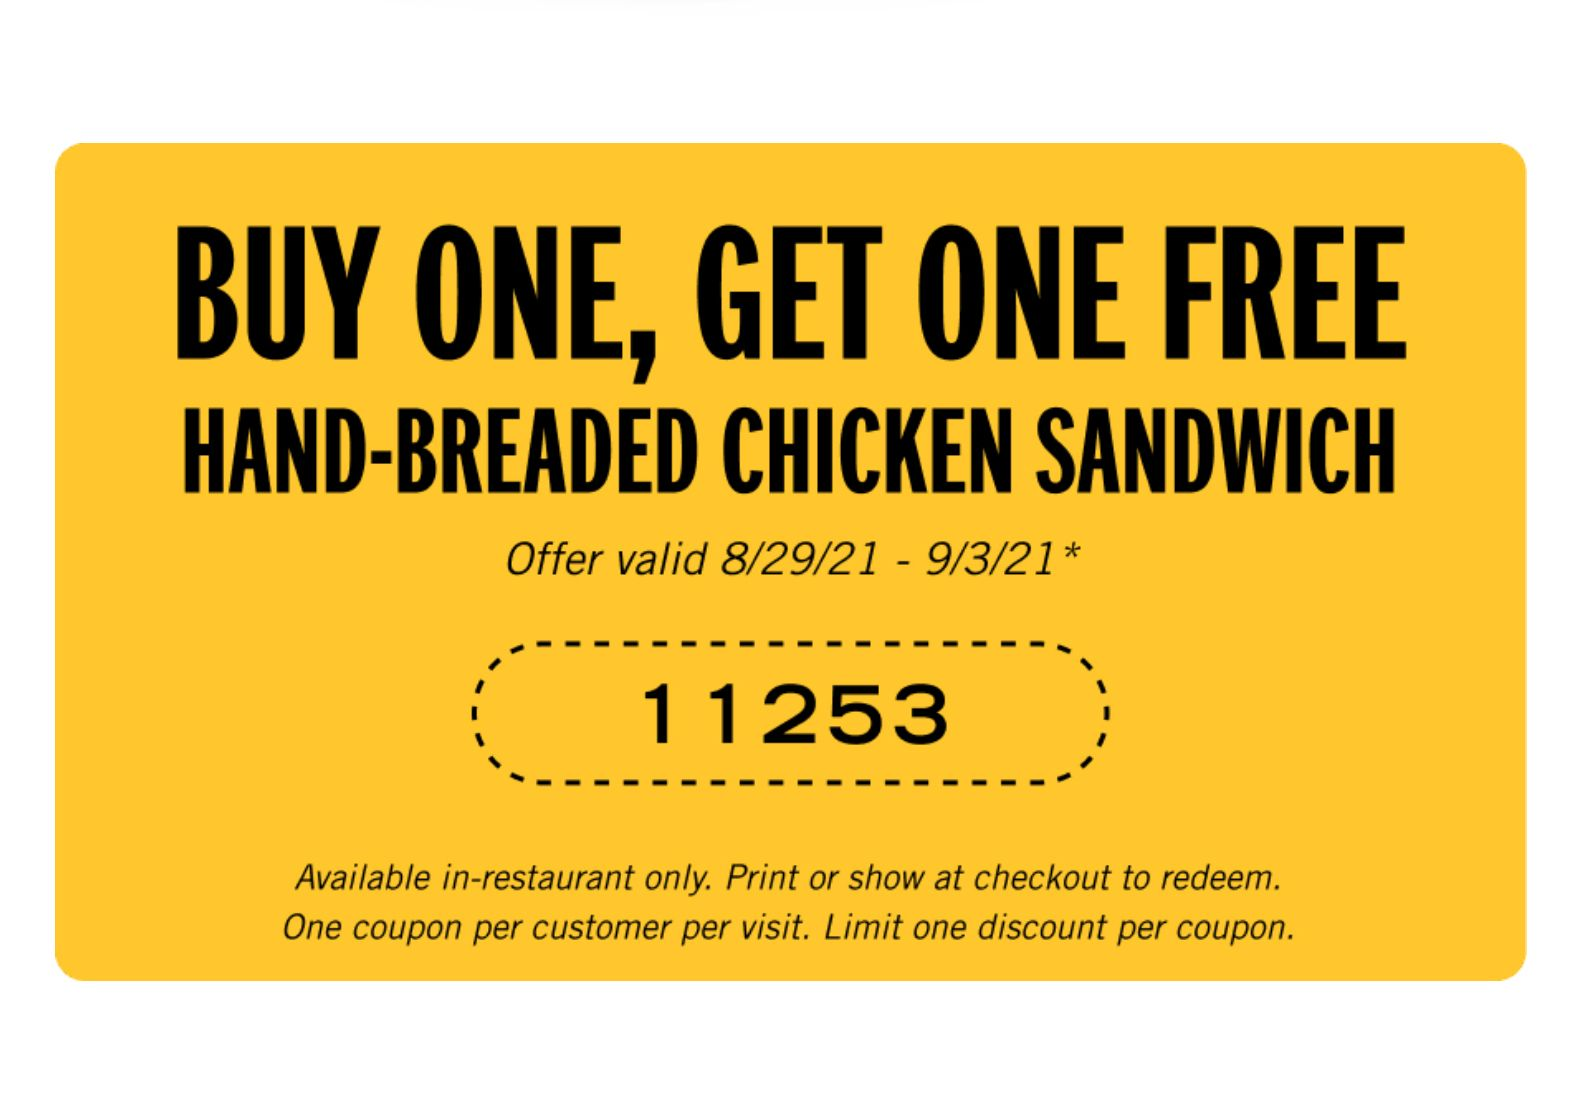 Carl's Jr. has Sent Out a New Buy 1 Get 1 Free Hand-breaded Chicken Sandwich Coupon through their Email Club